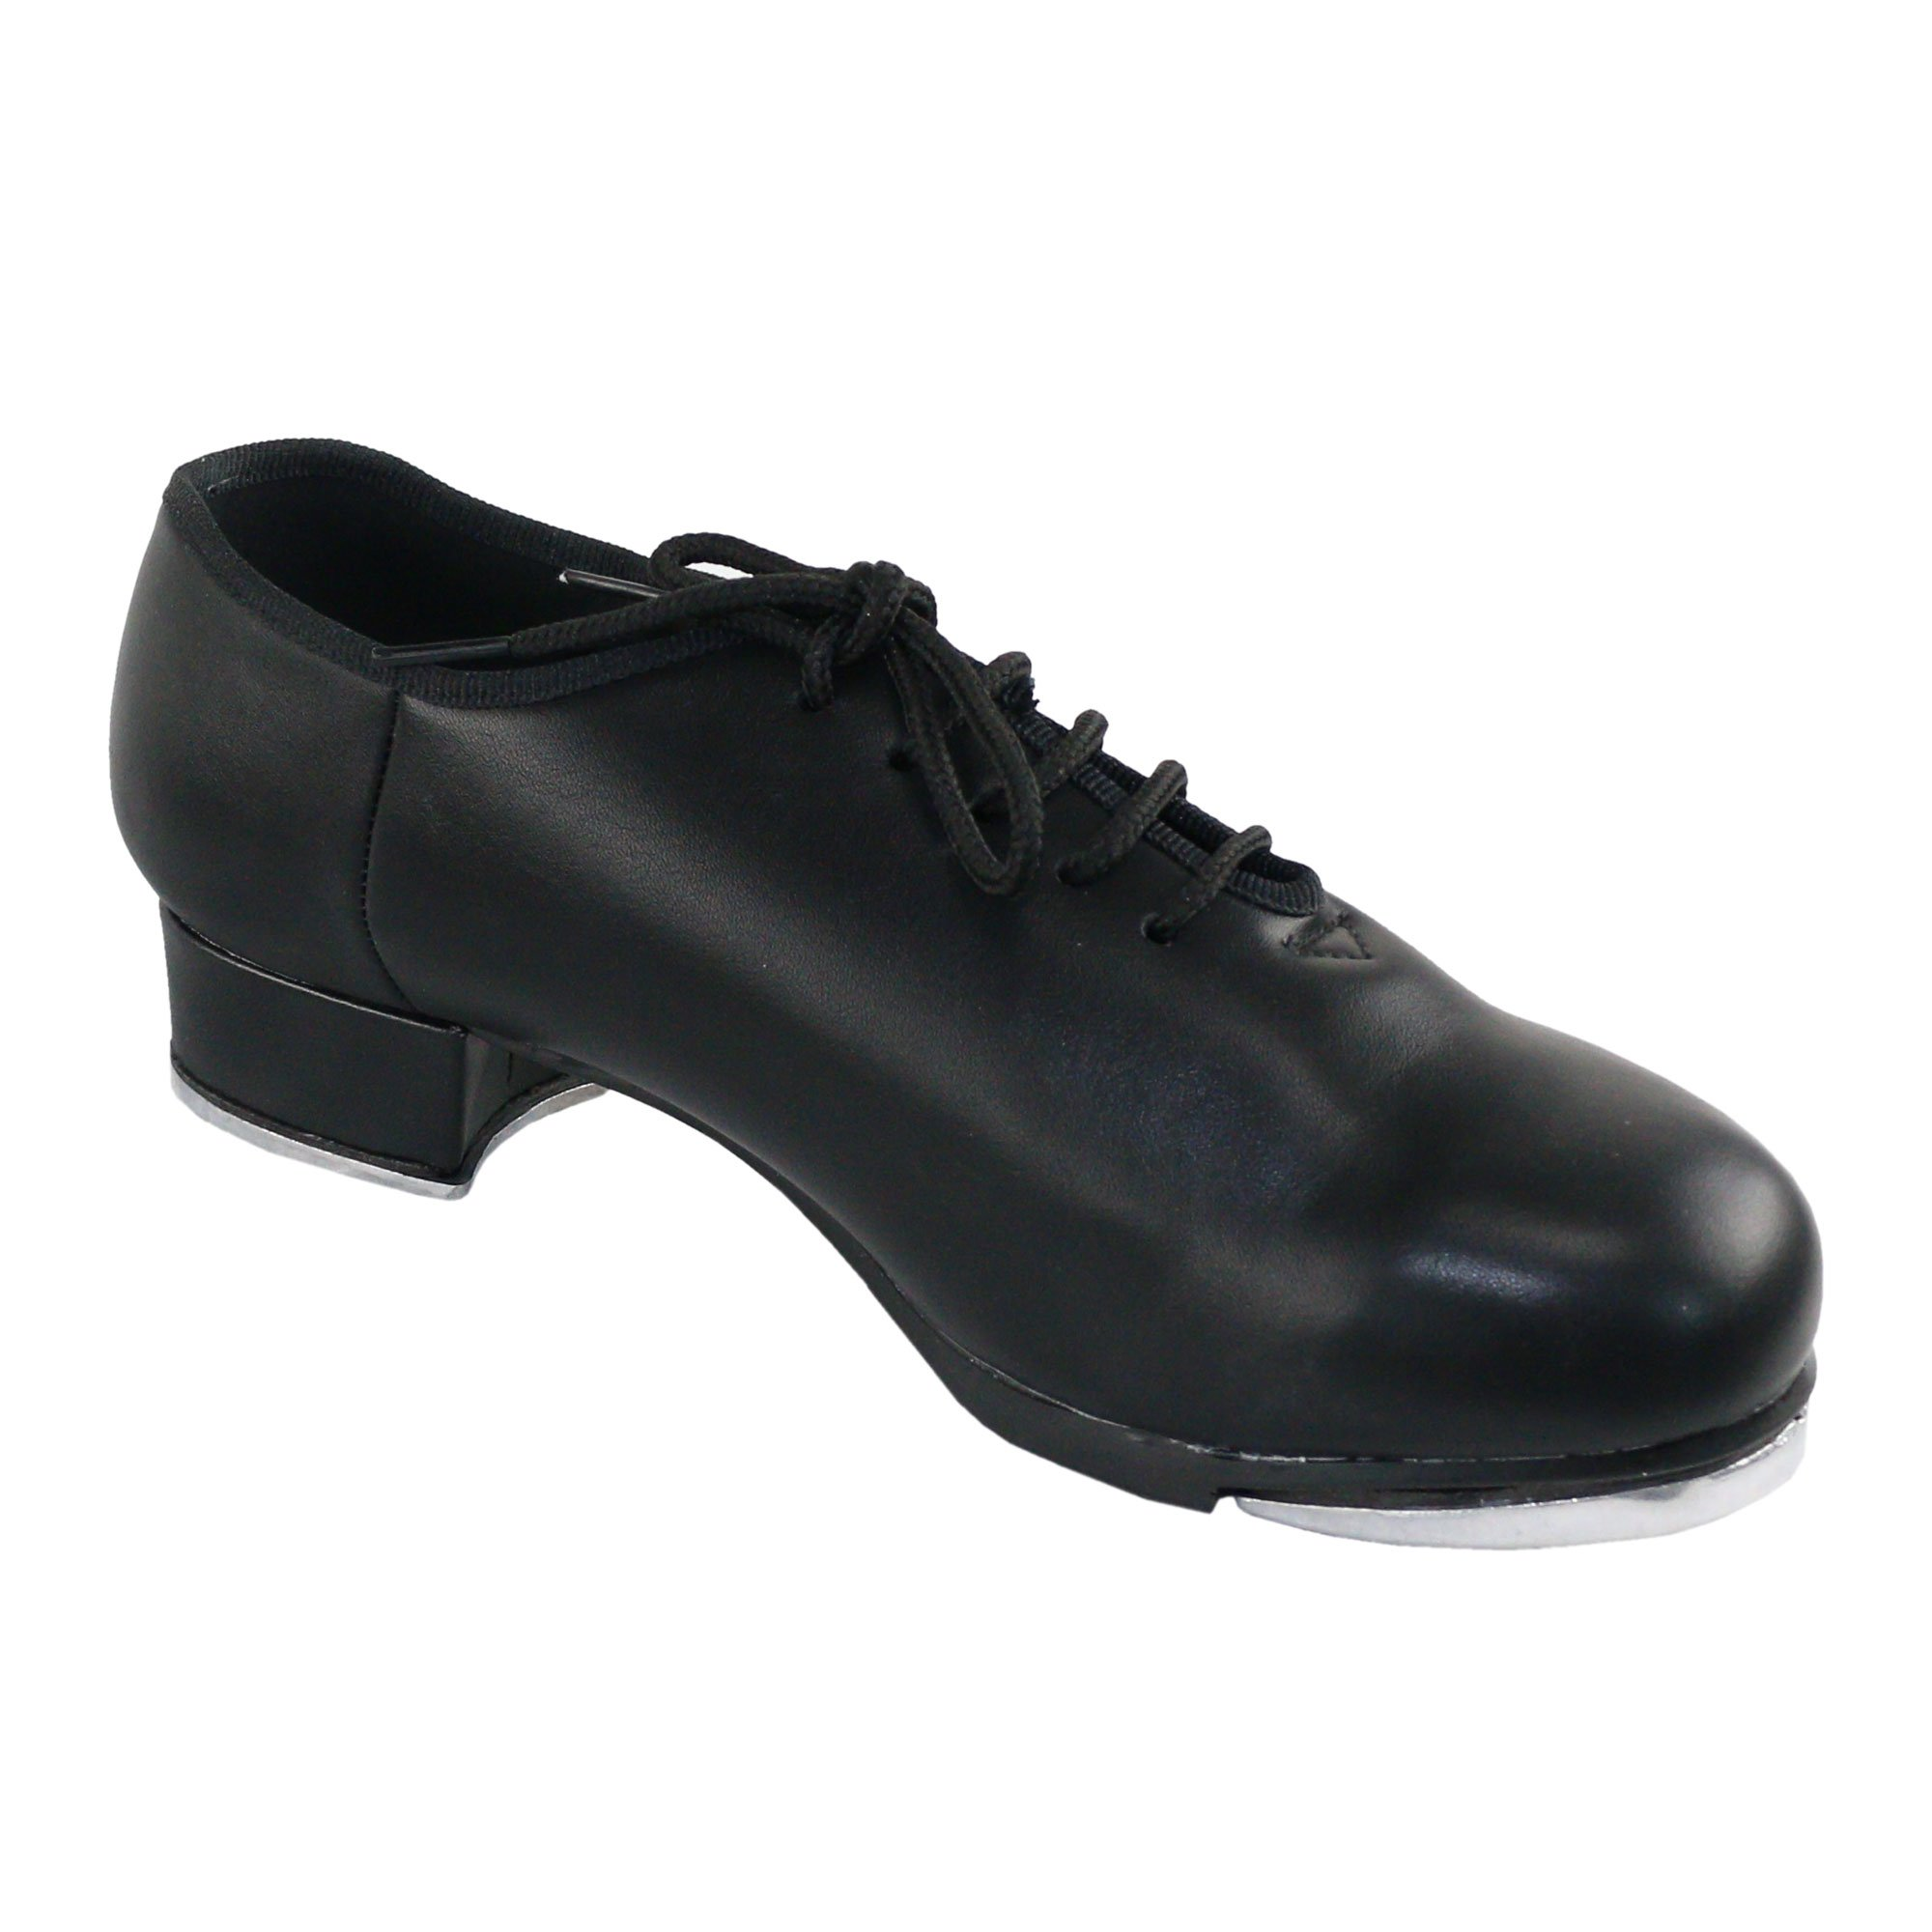 Danzcue Adult Lace Up Tap Shoes